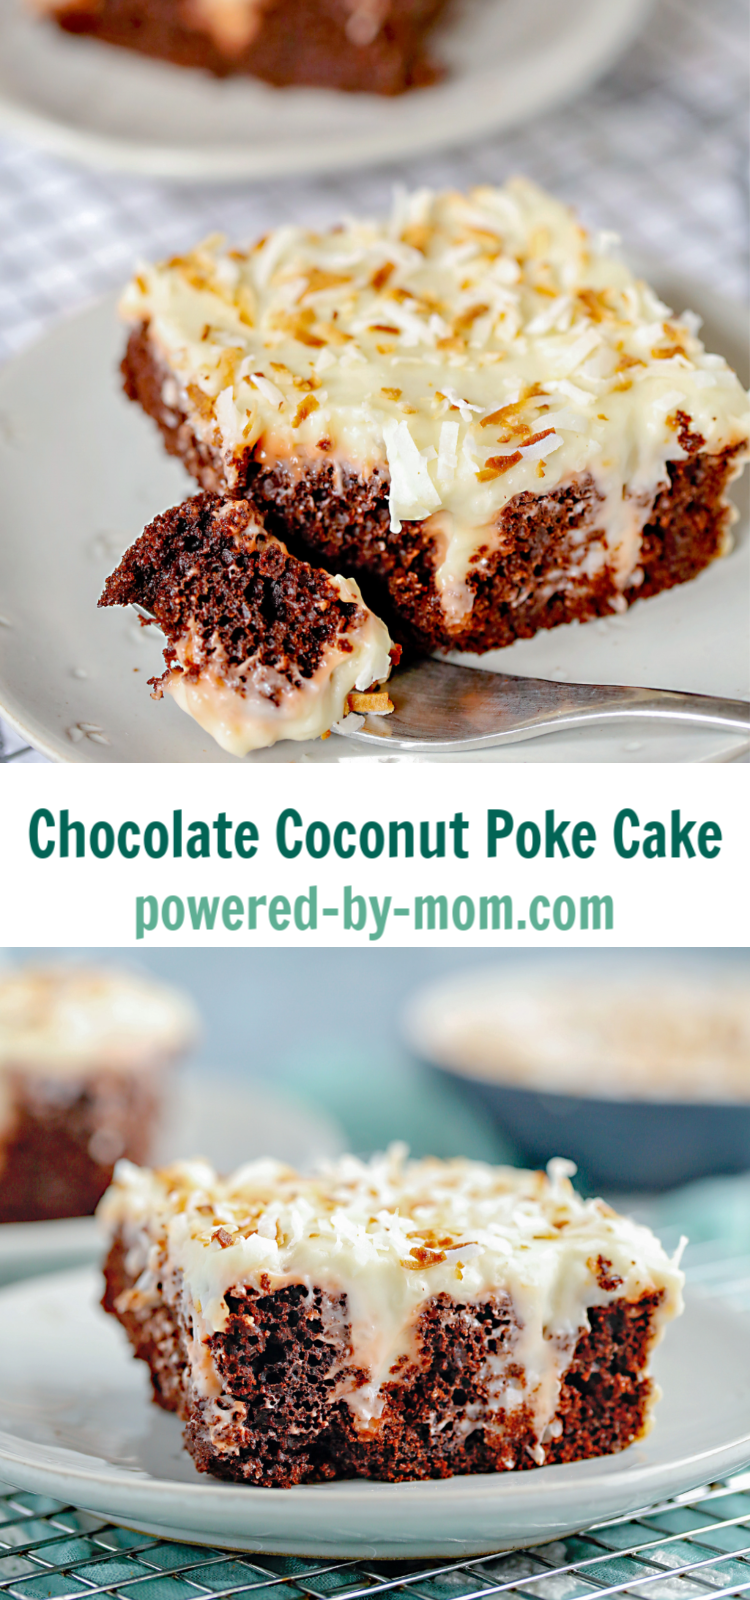 Make this Chocolate Coconut Poke Cake with a simple cake mix and homemade coconut pudding that will wow your tastebuds and look like you slaved for hours in the kitchen! Make sure to check out our Death by Chocolate Poke Cake too!